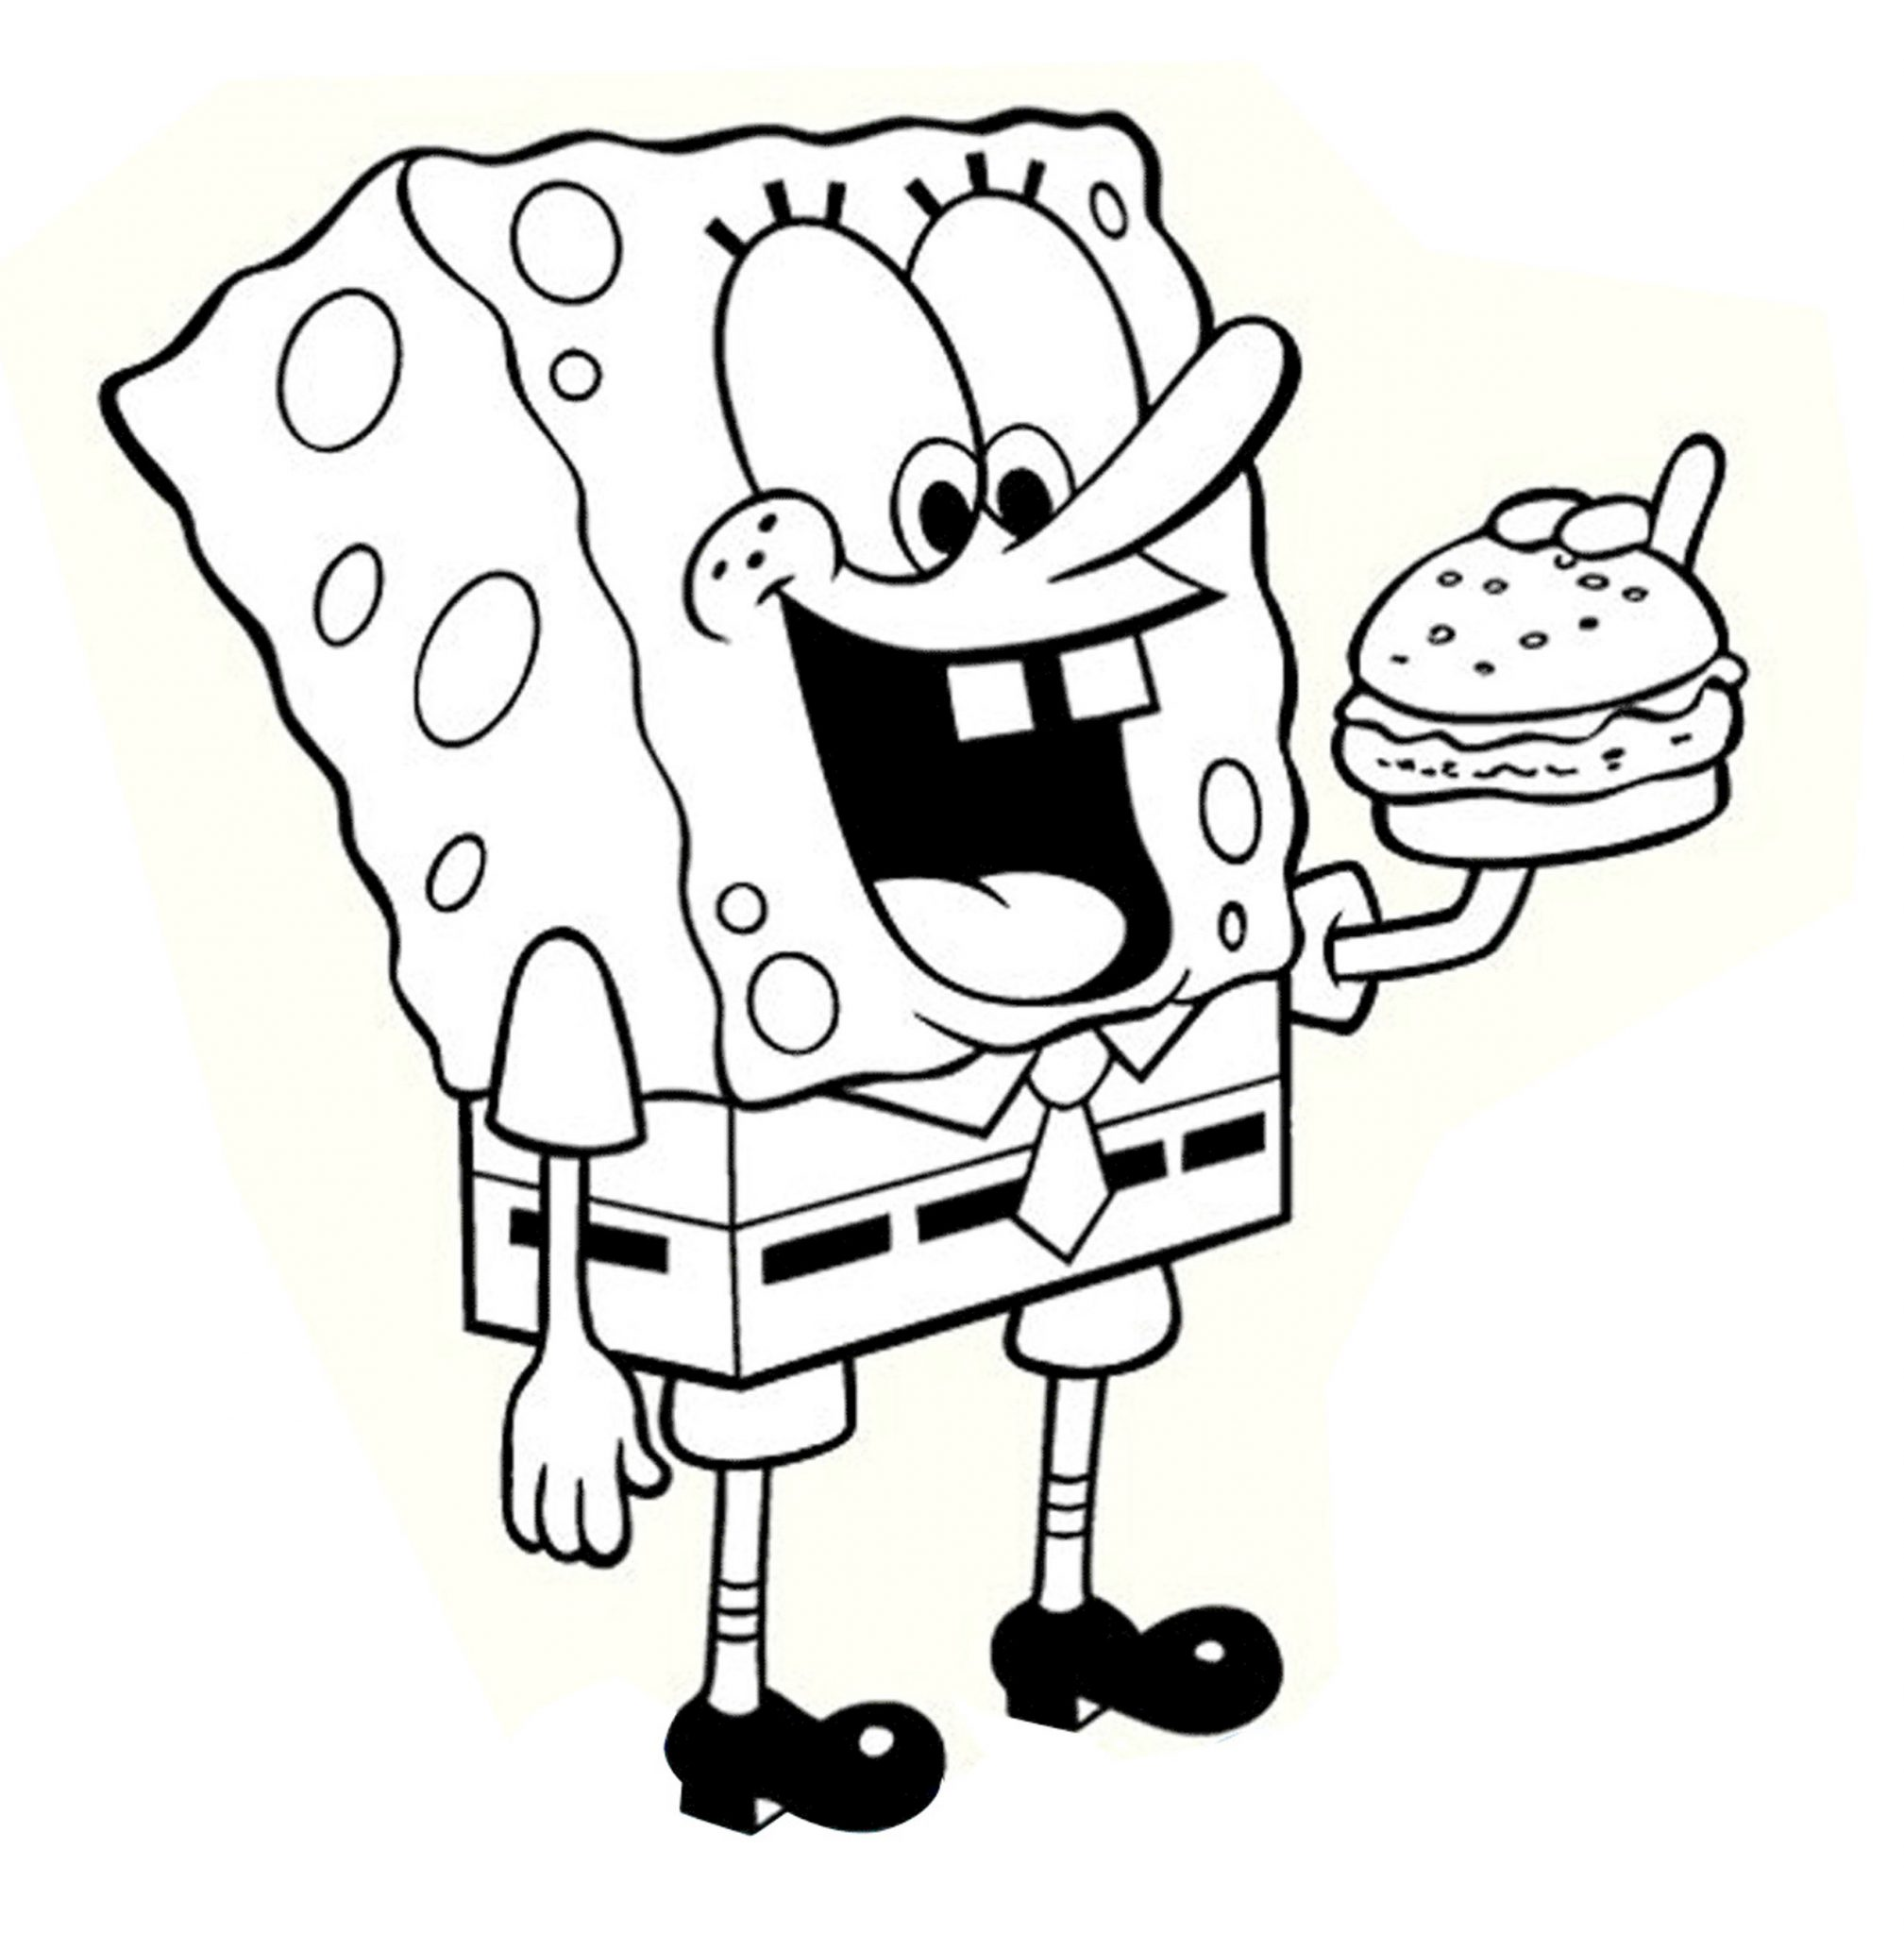 Print & Download Choosing SpongeBob Coloring Pages For Your